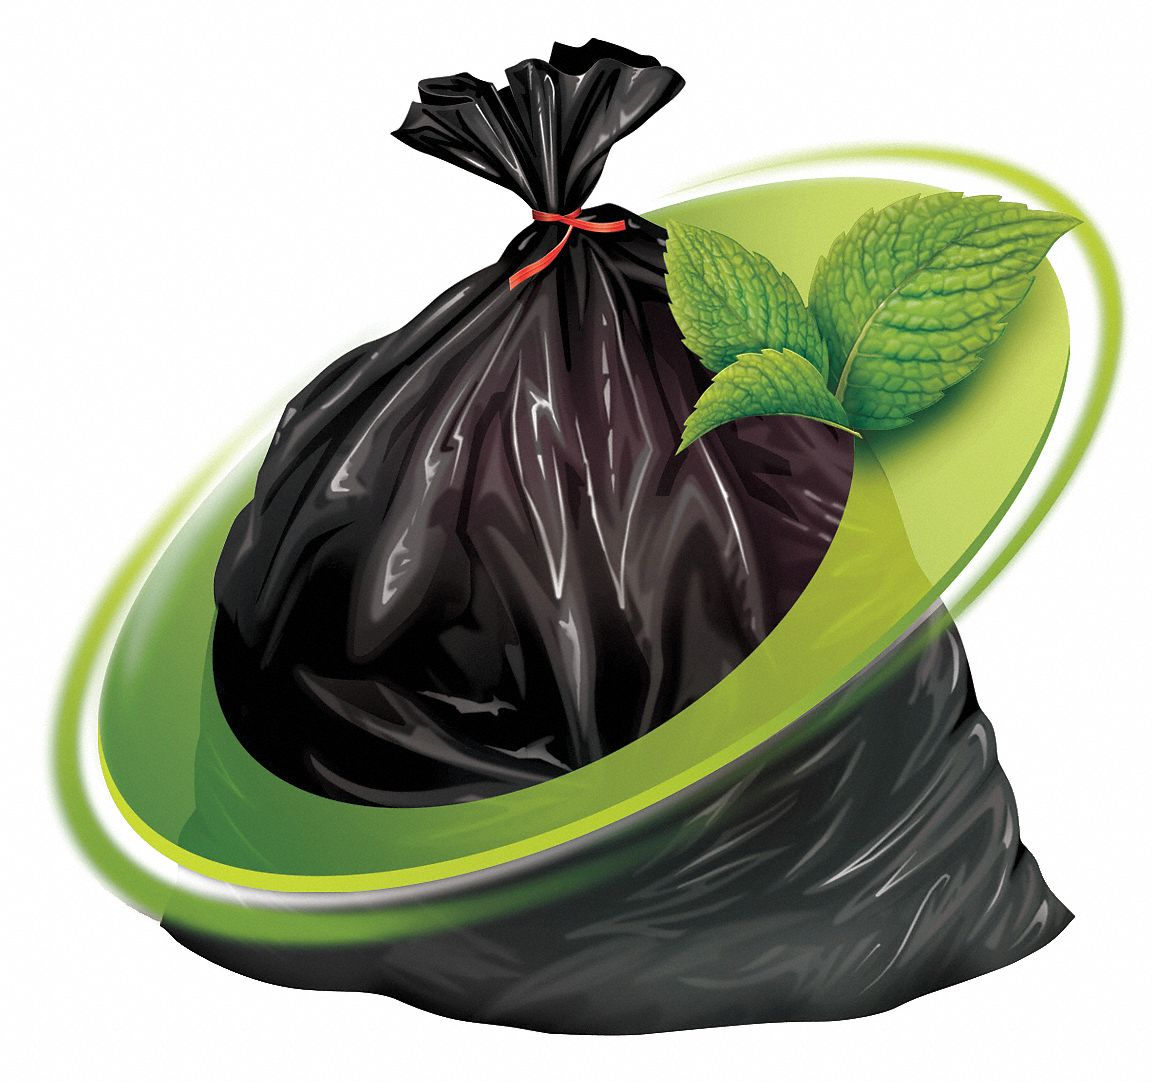 Recycled Trash Bags And Liners